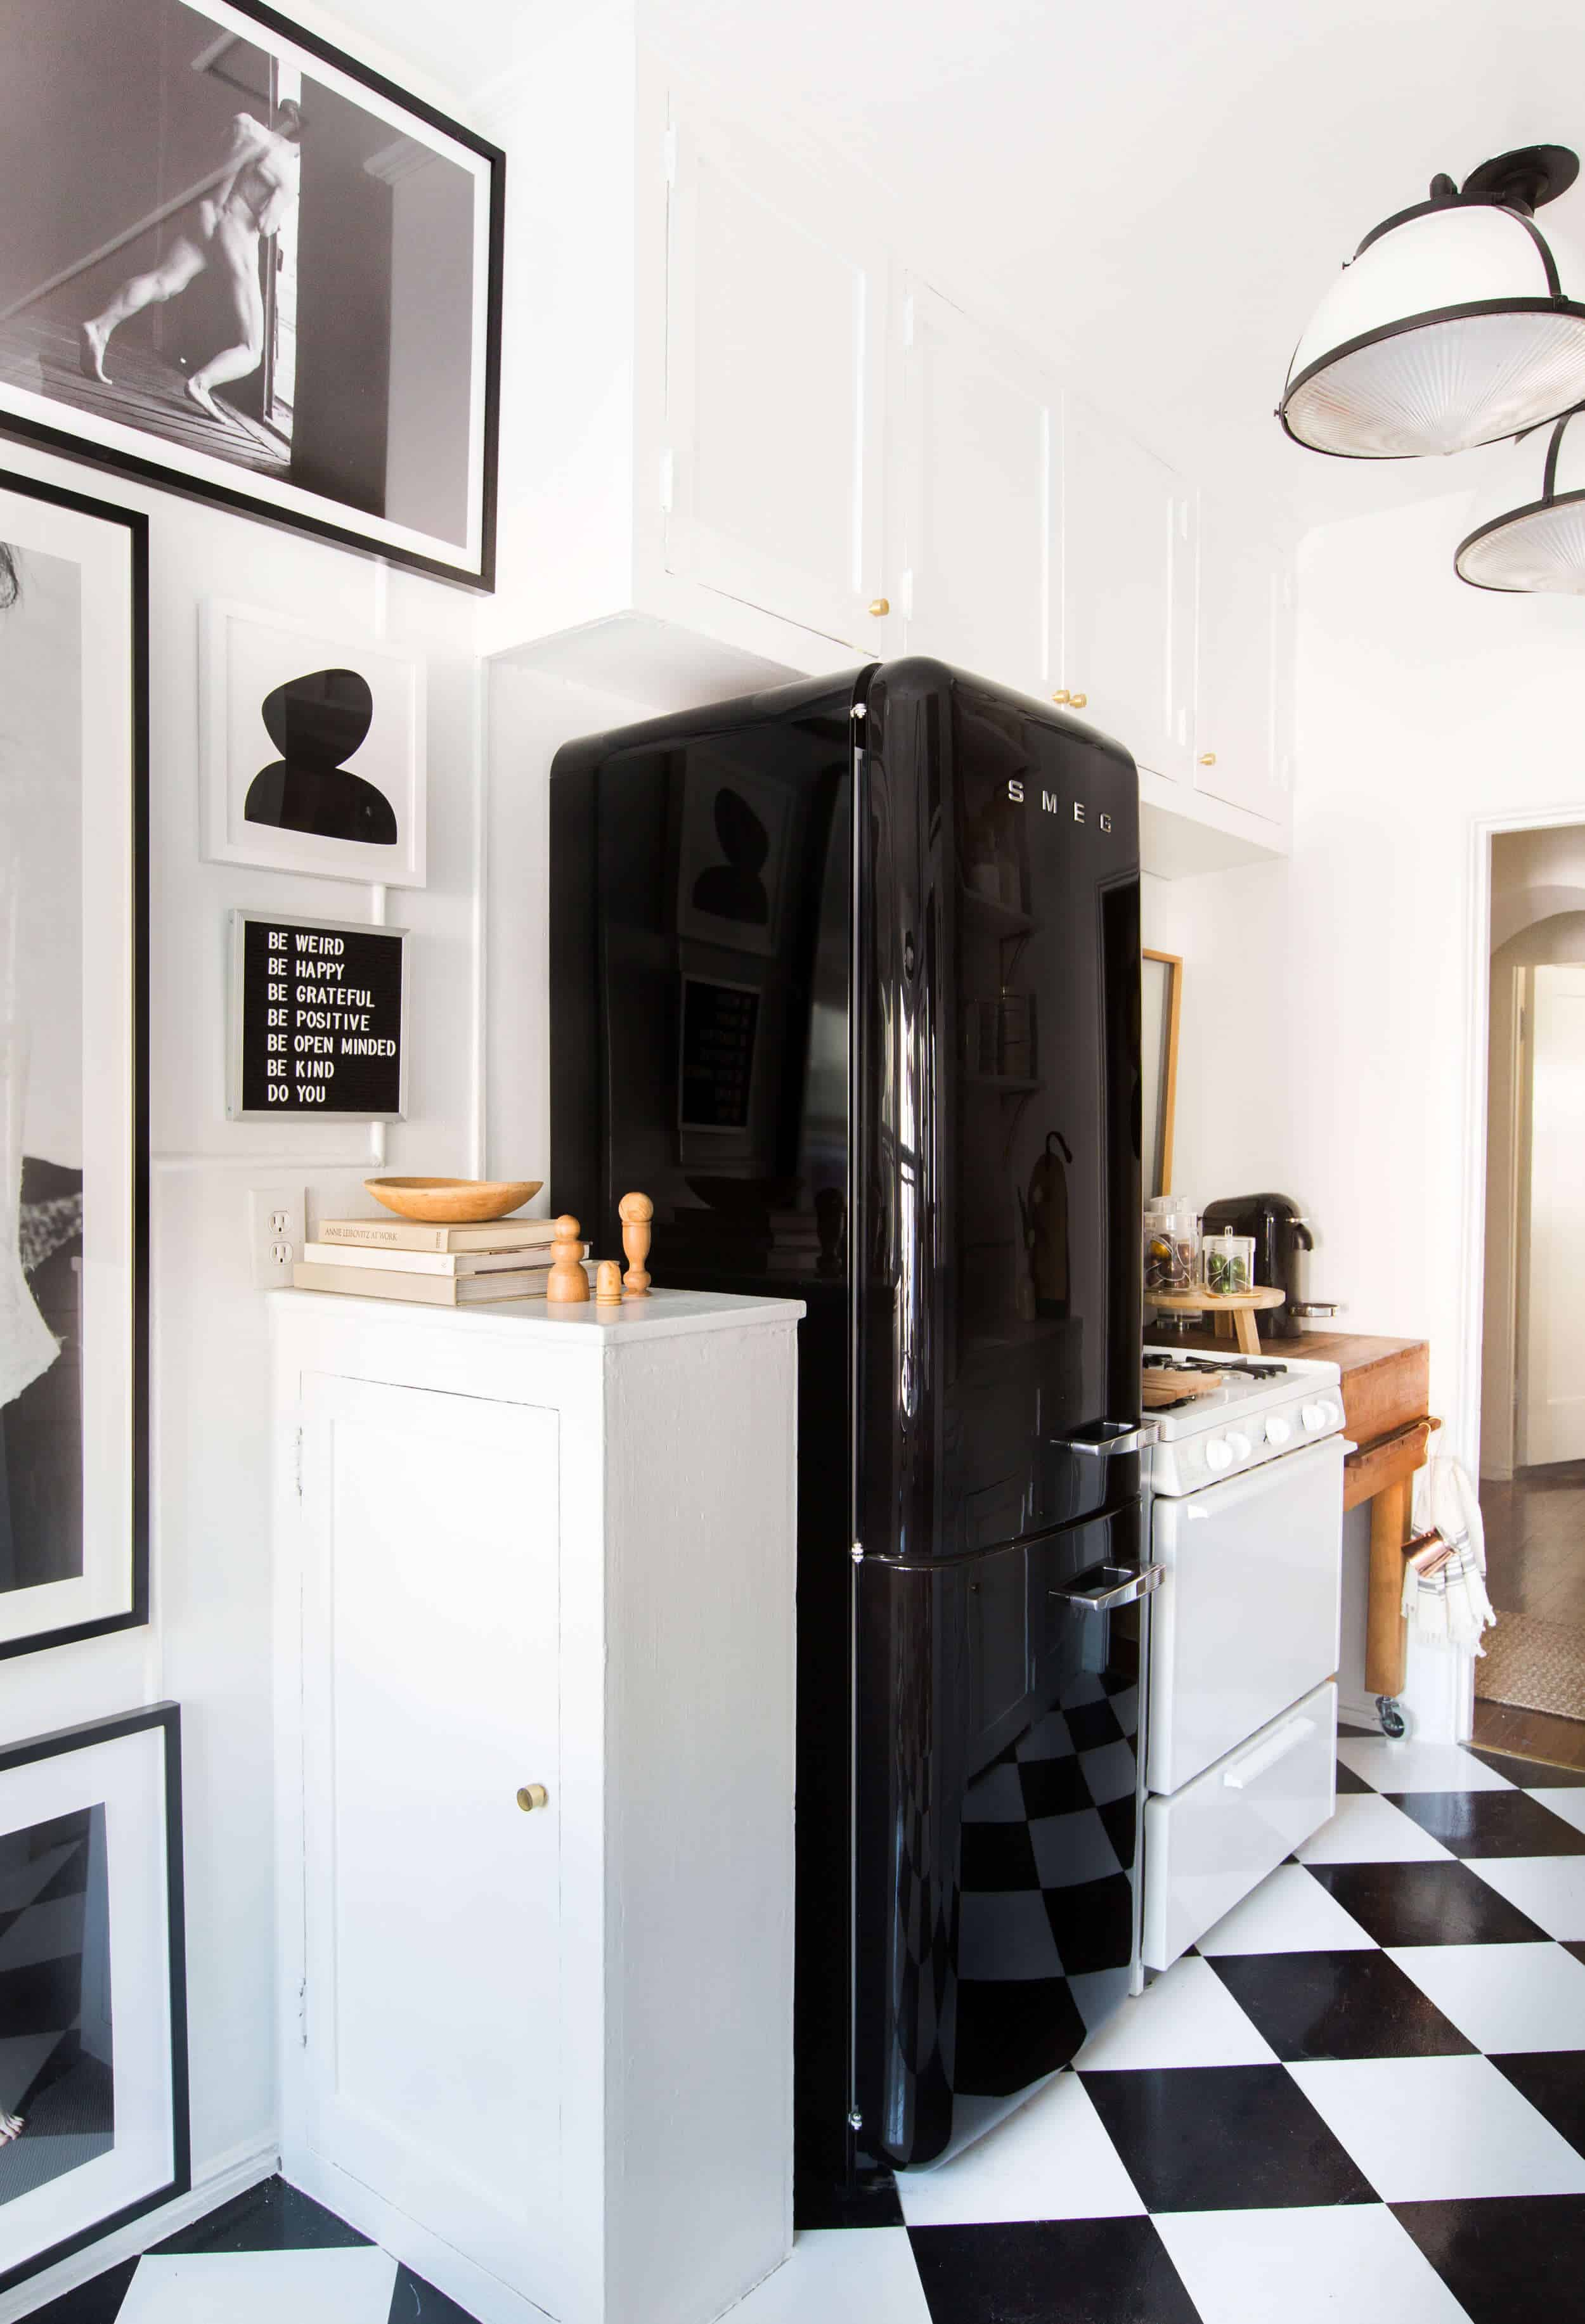 Brady-Tolbert_Emily-Henderson_Black-and-White-Kitchen_Vintage_Apartment-Refresh_Wood_Brass_Checkered-Floor_Copper-Pots_Eclectic_Glam_Modern_Traditional_23